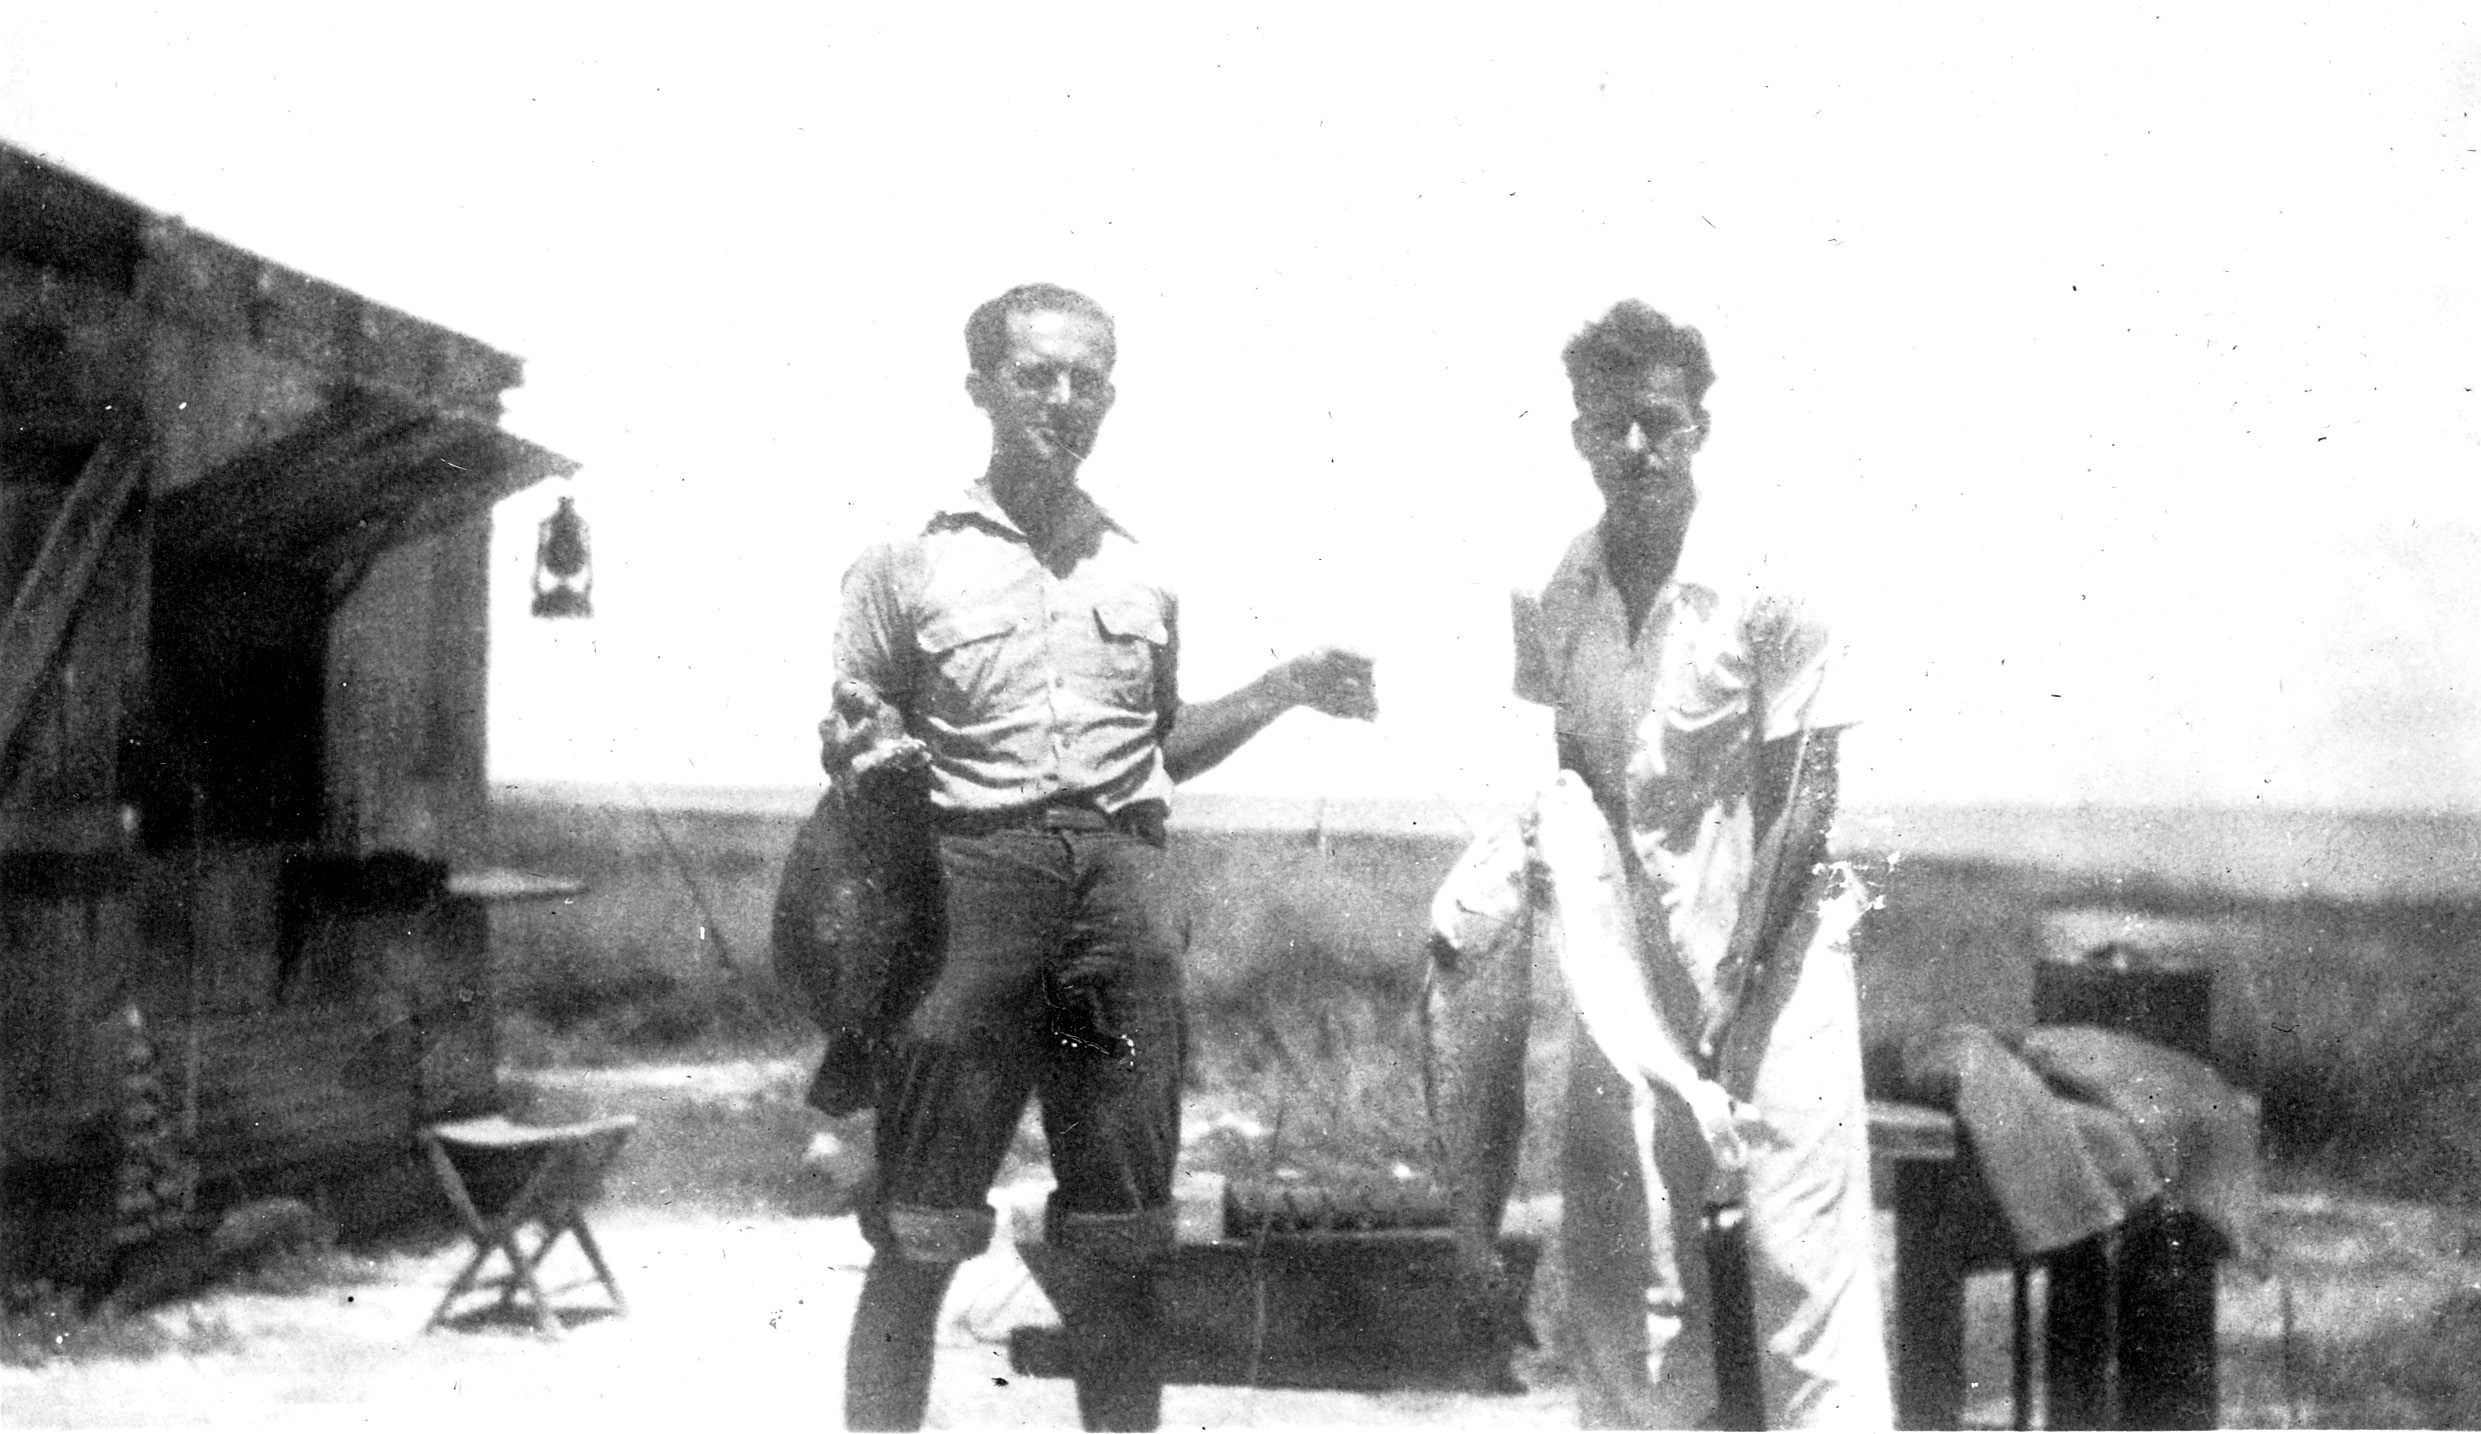 Hunting and Fishing In The 40's